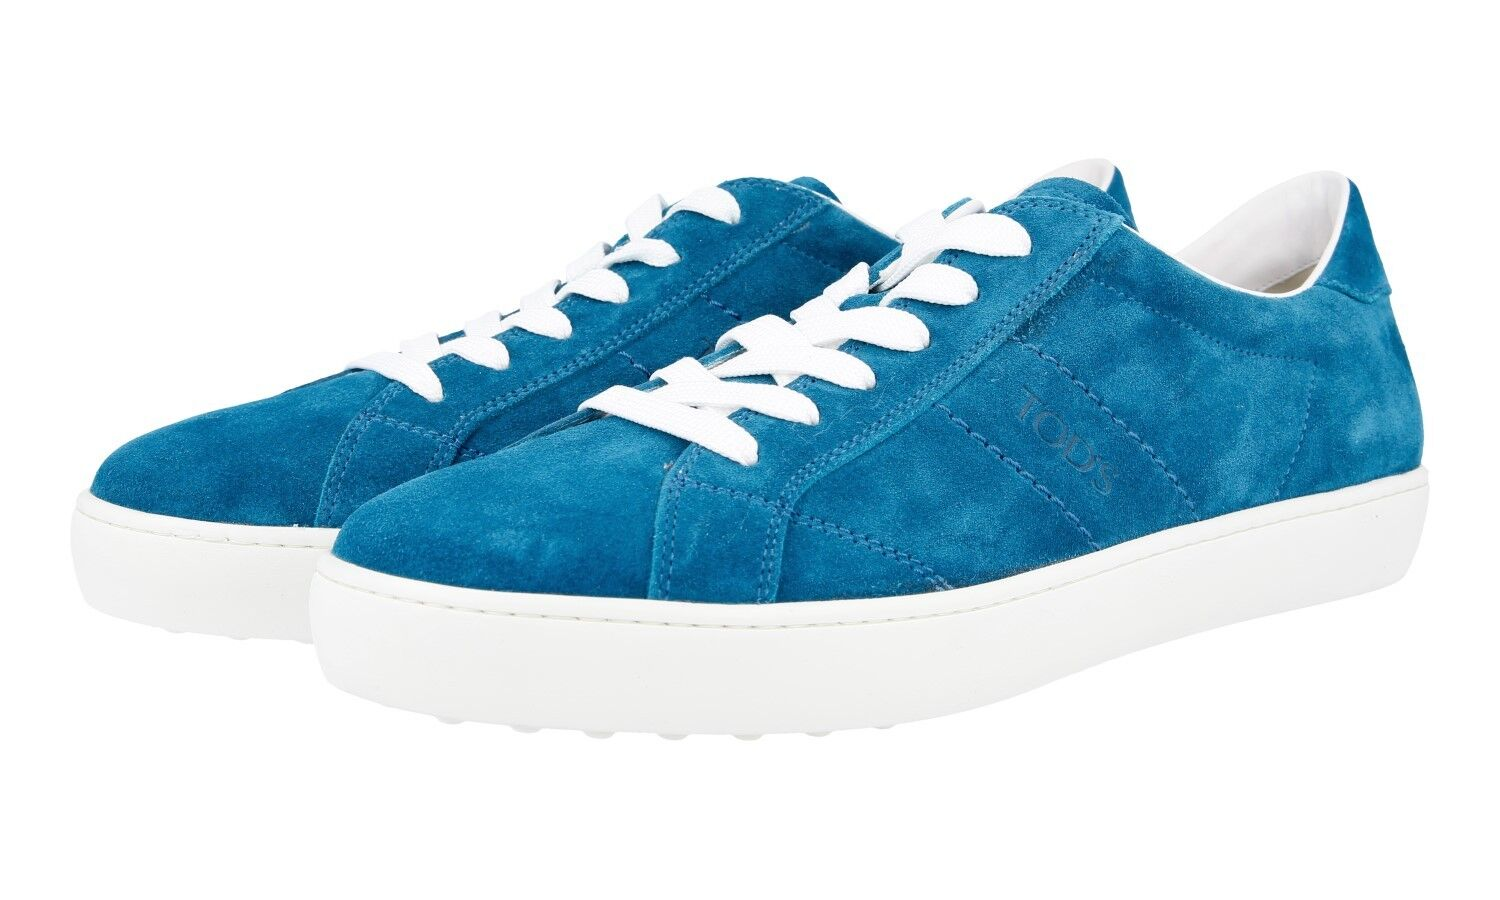 AUTHENTIC TODS SNEAKERS SHOES ALLACIATO TURQUOISE NEW US 9